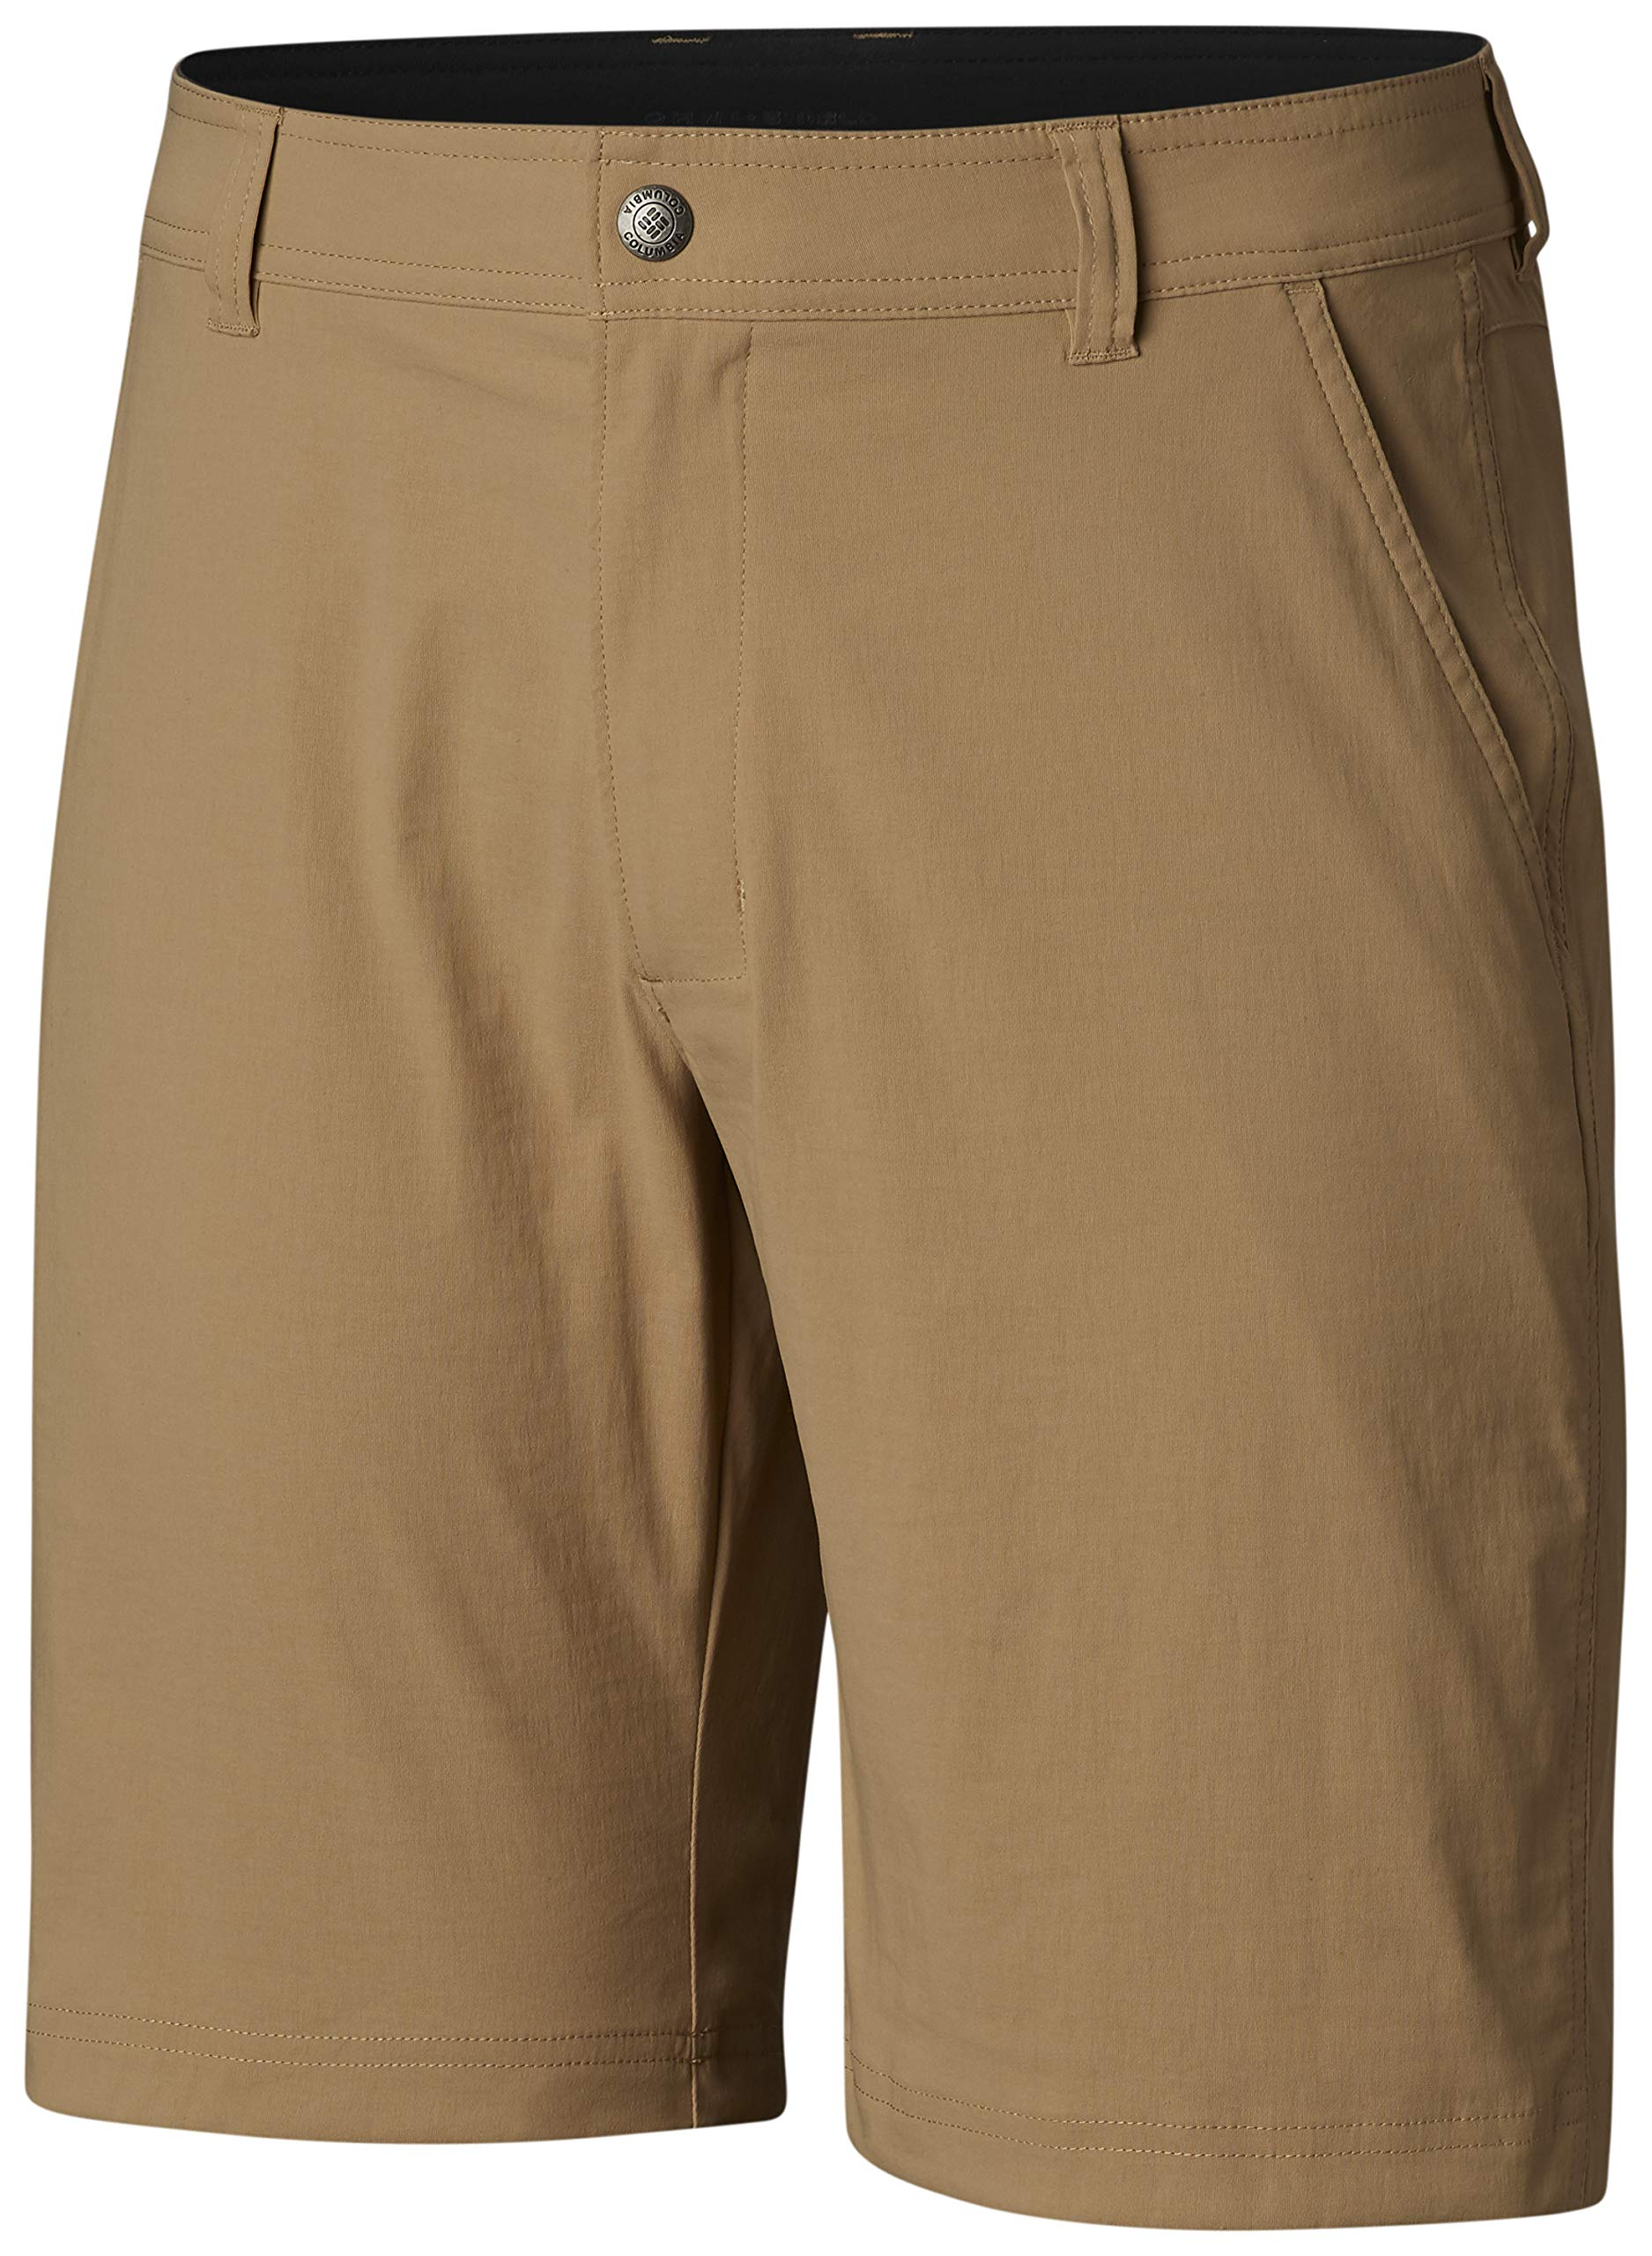 Columbia Men's Royce Peak II Short, Water & Stain Resistant by Columbia